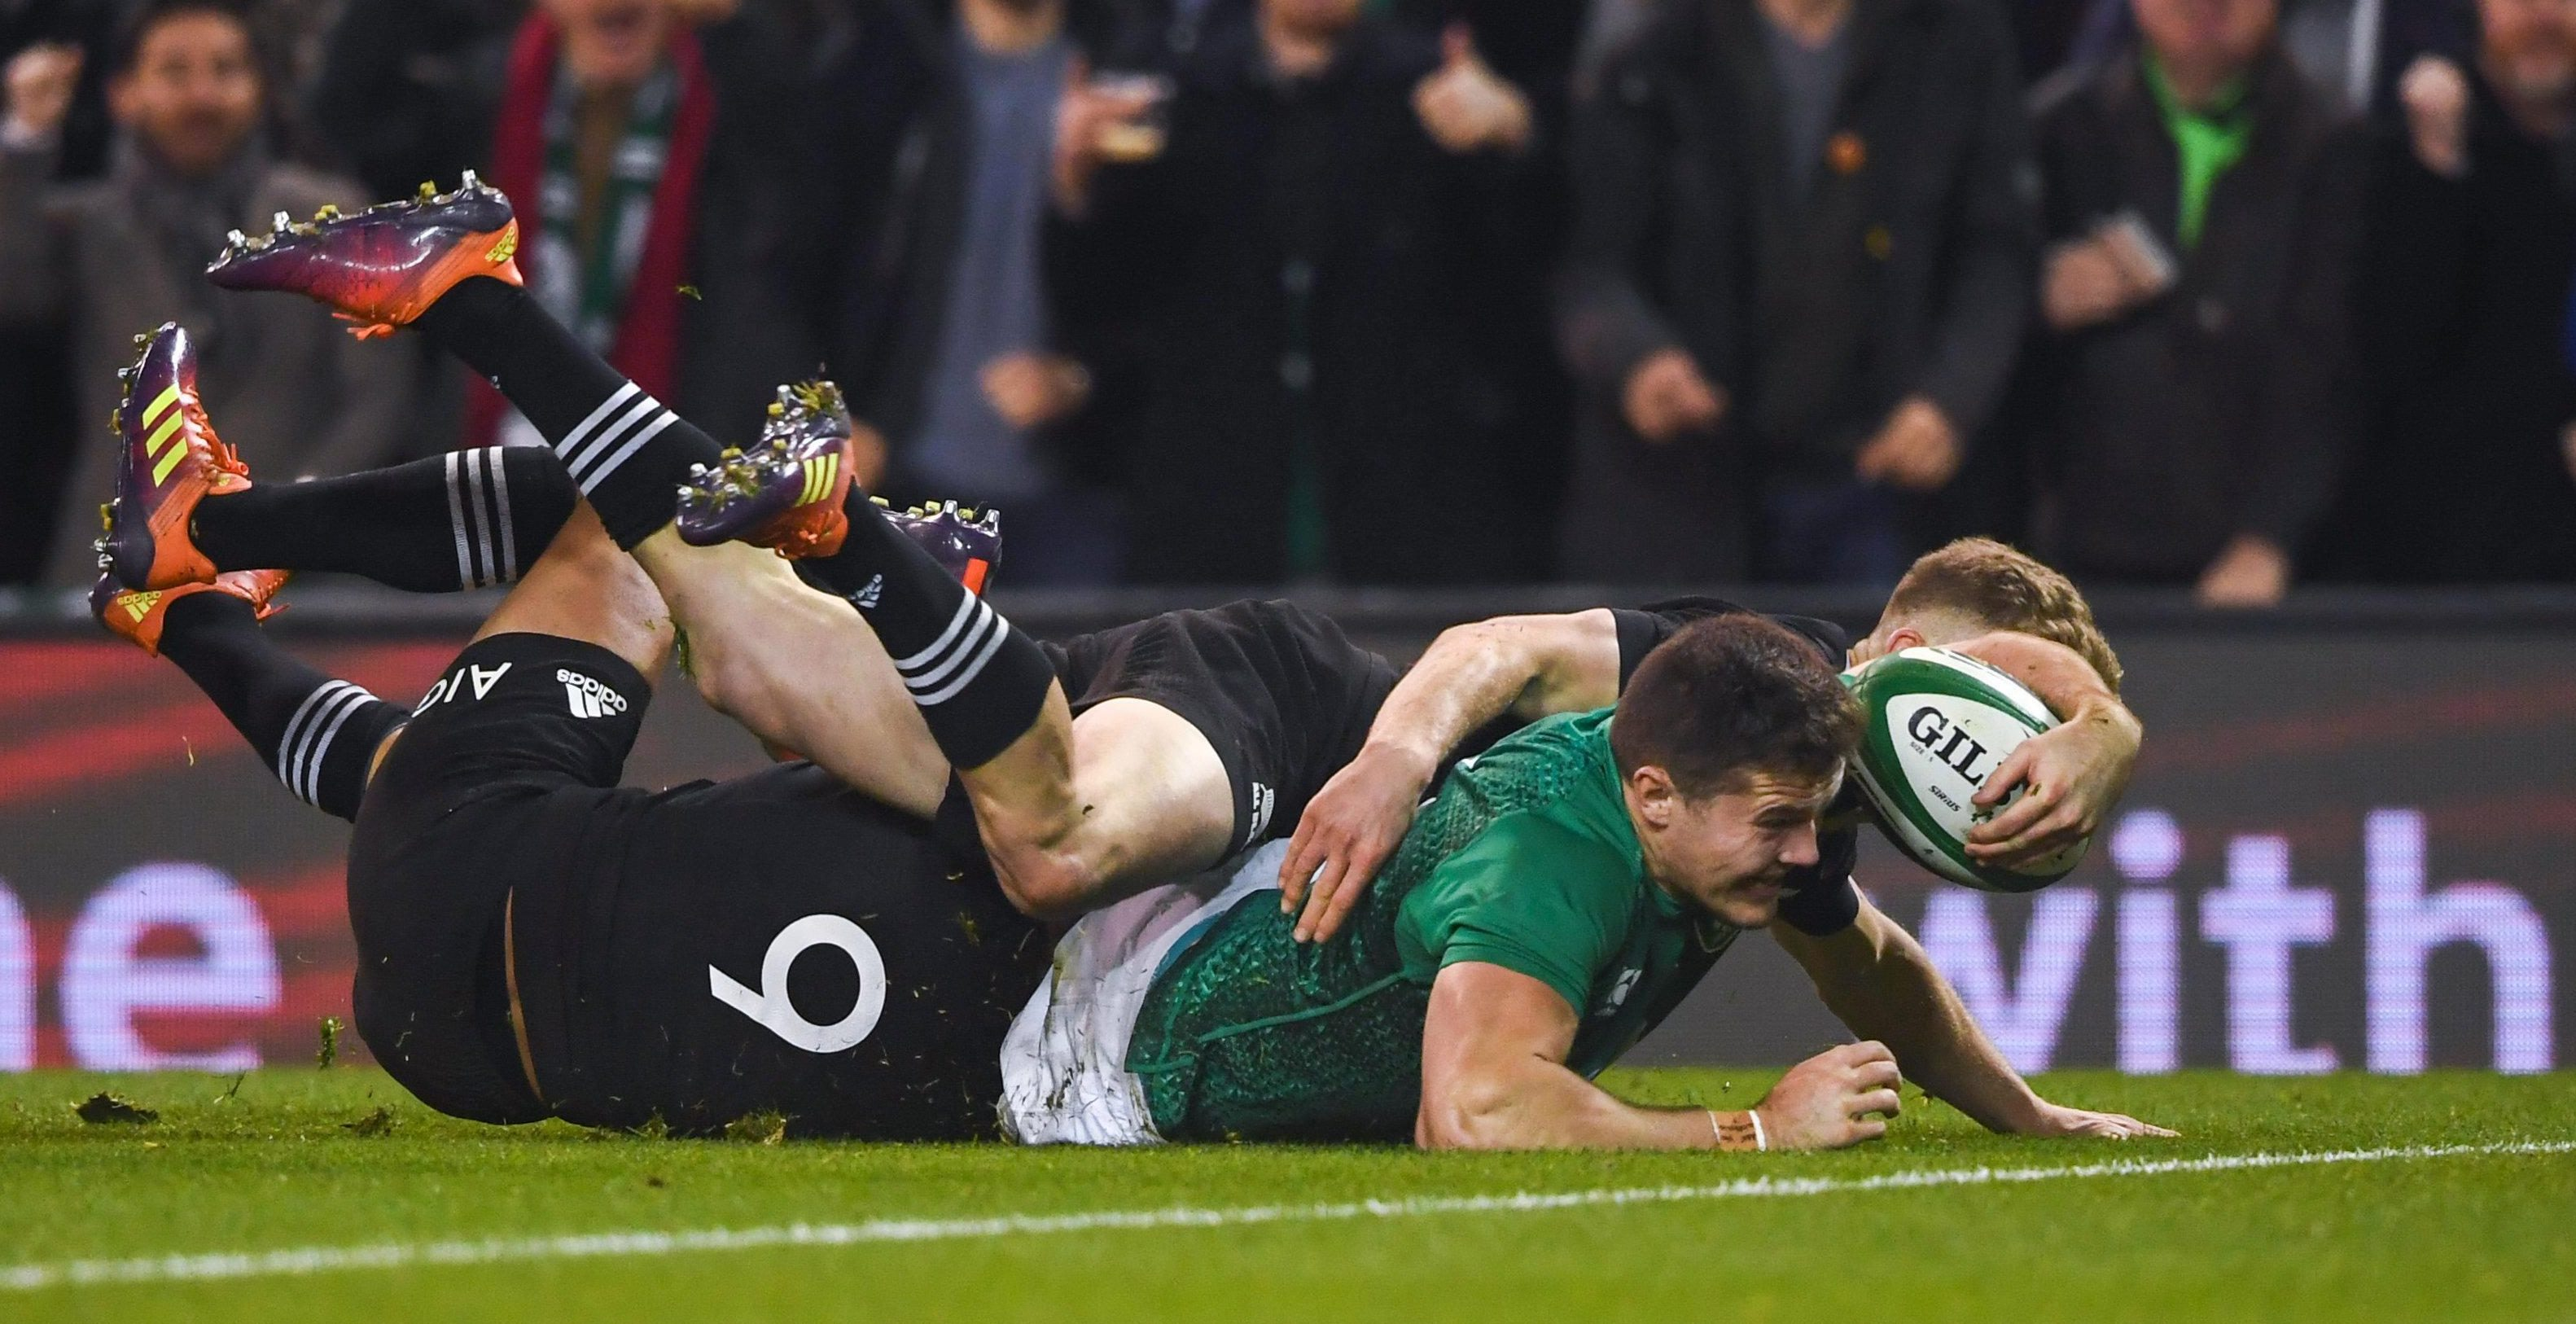 Jacob Stockdale crosses for his breakthrough try in the thrilling clash with New Zealand